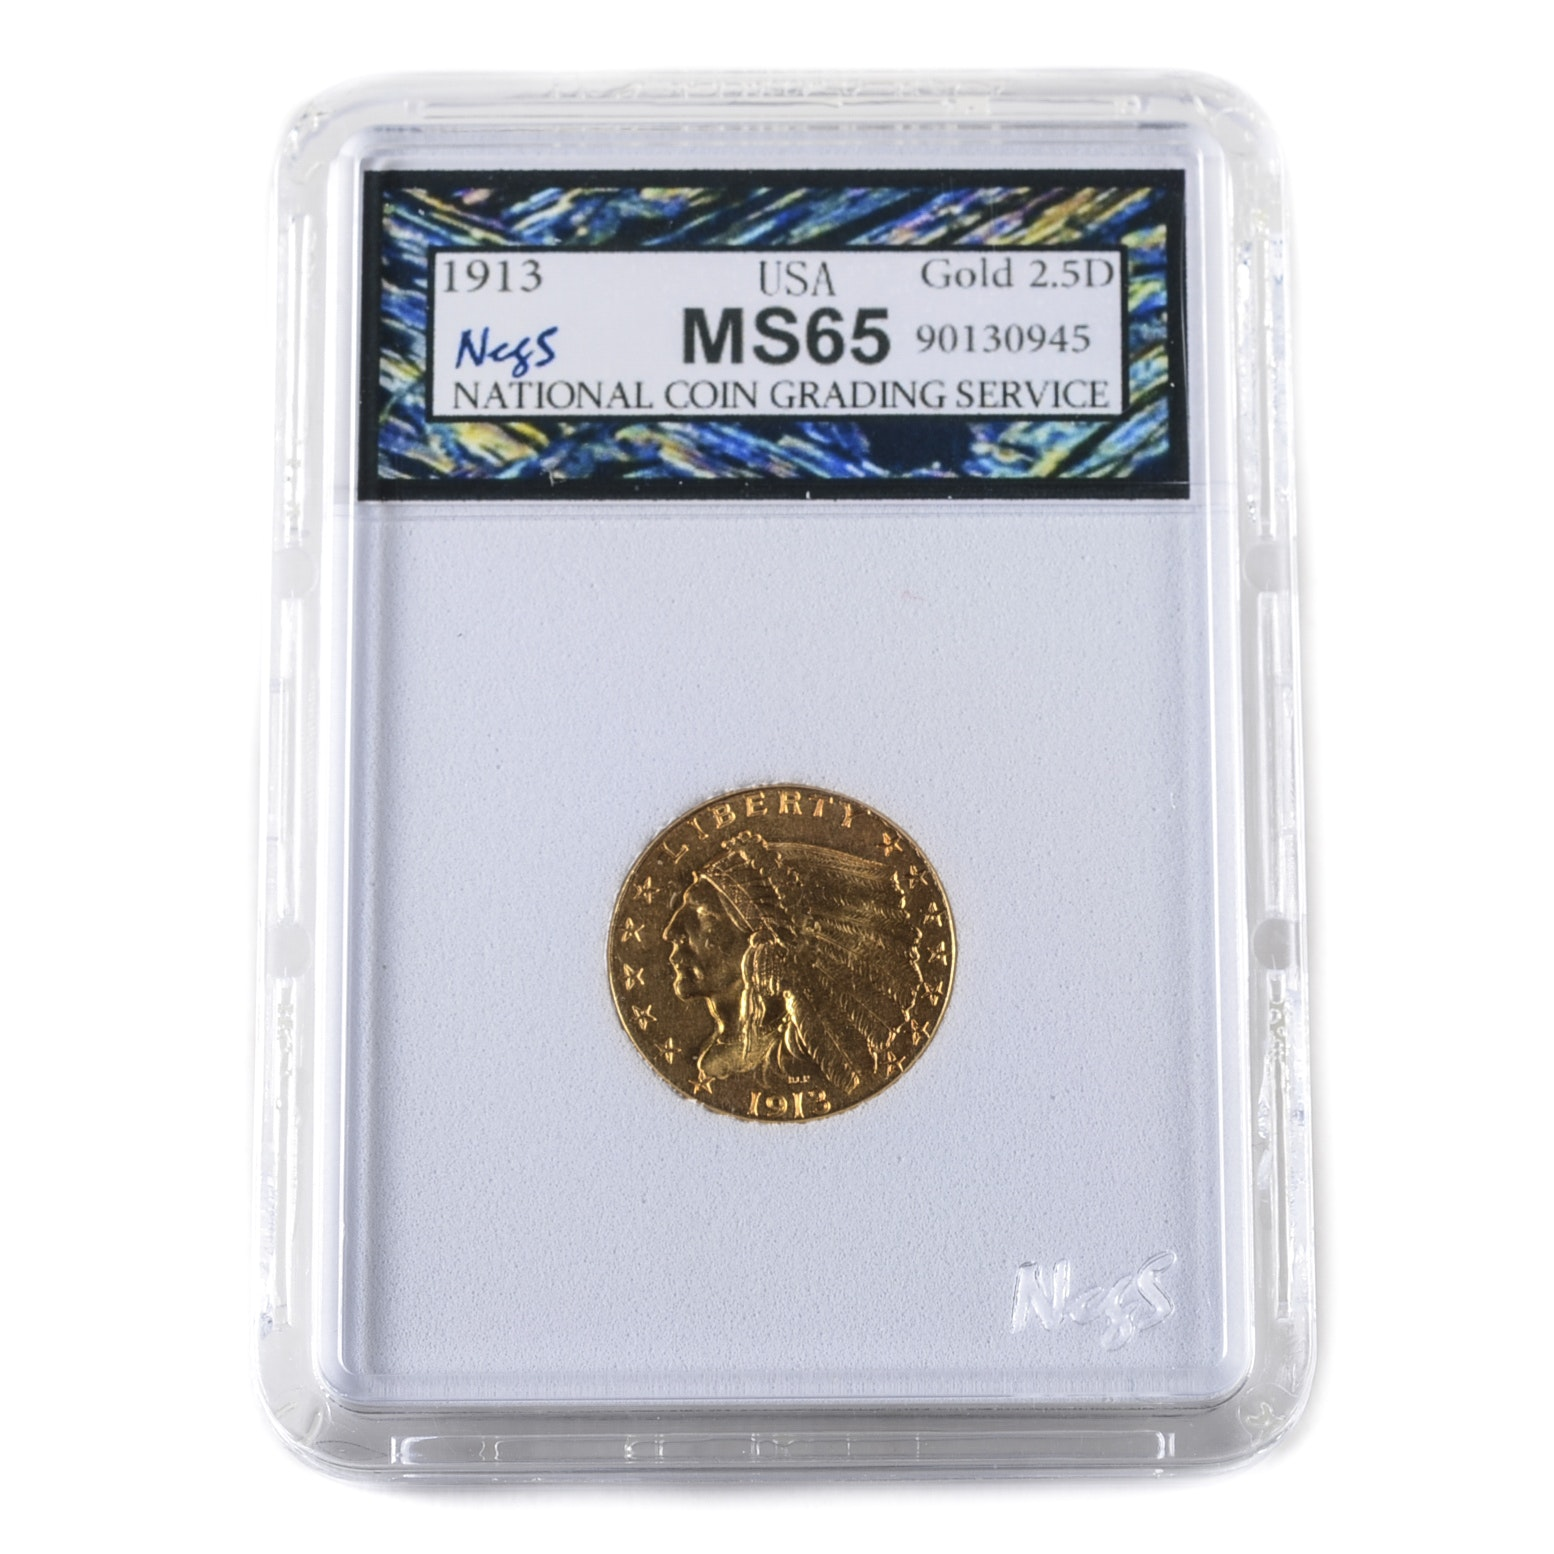 Graded MS65 (By NCGS) 1913 Indian Head $2 1/2 Gold Coin